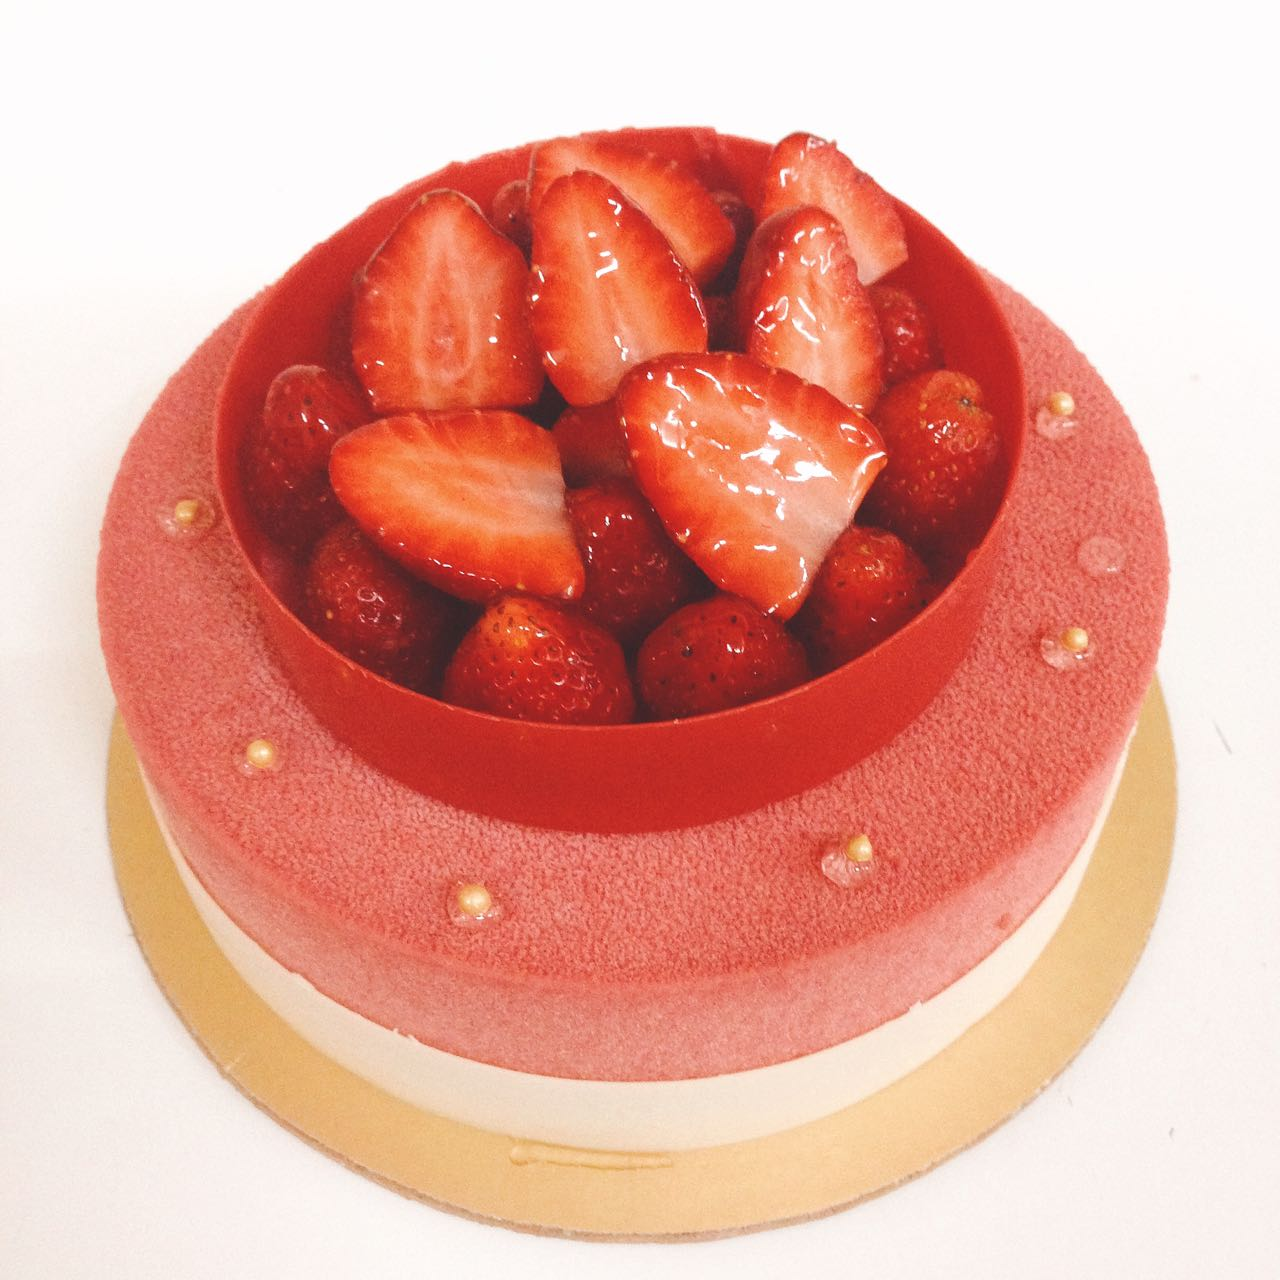 Strawberry Splendour Cake (Strawberry and Cream)